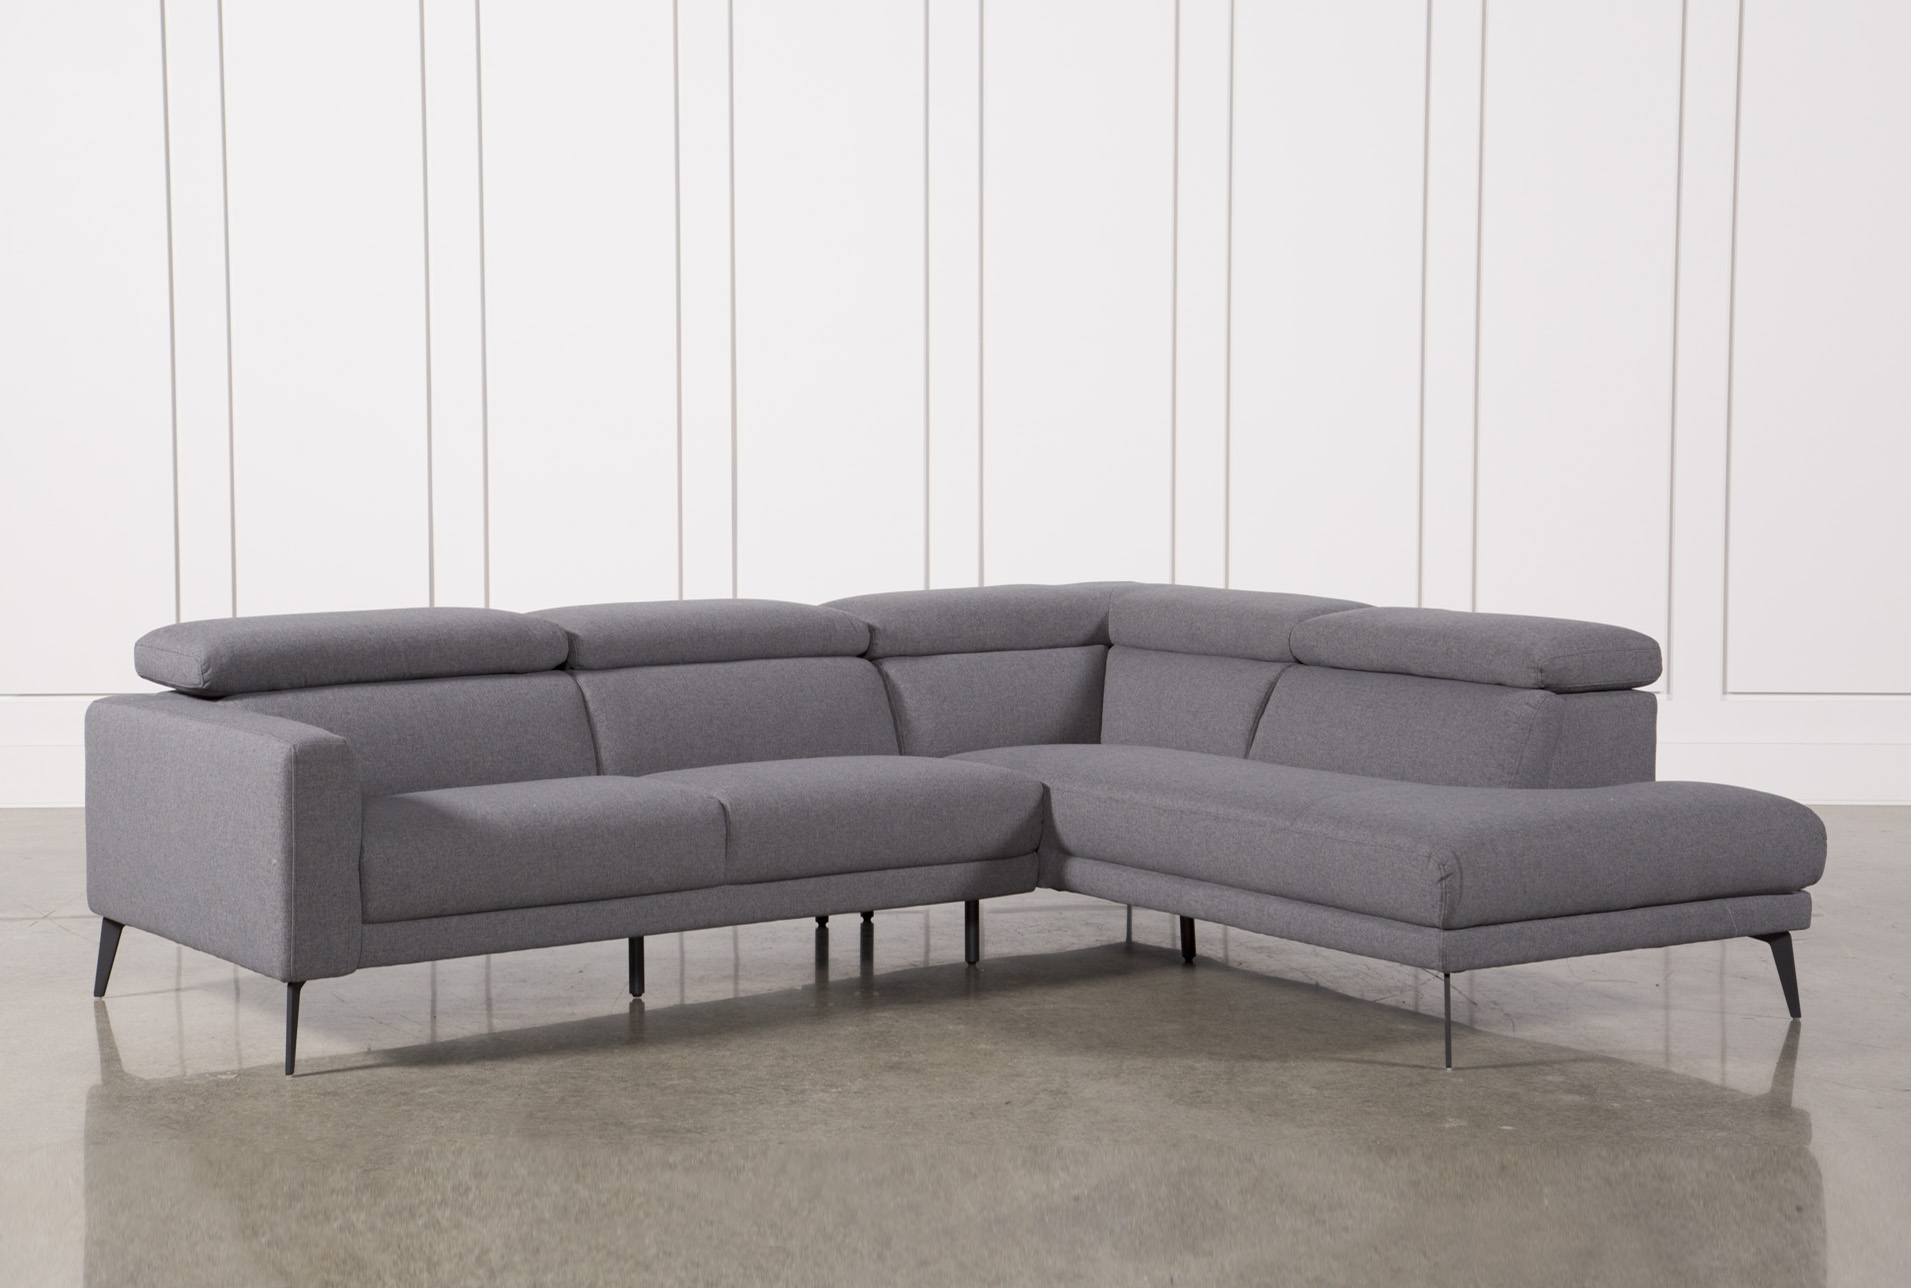 living es sofa how to make a table out of pallets neo three seater modern square arm black pu